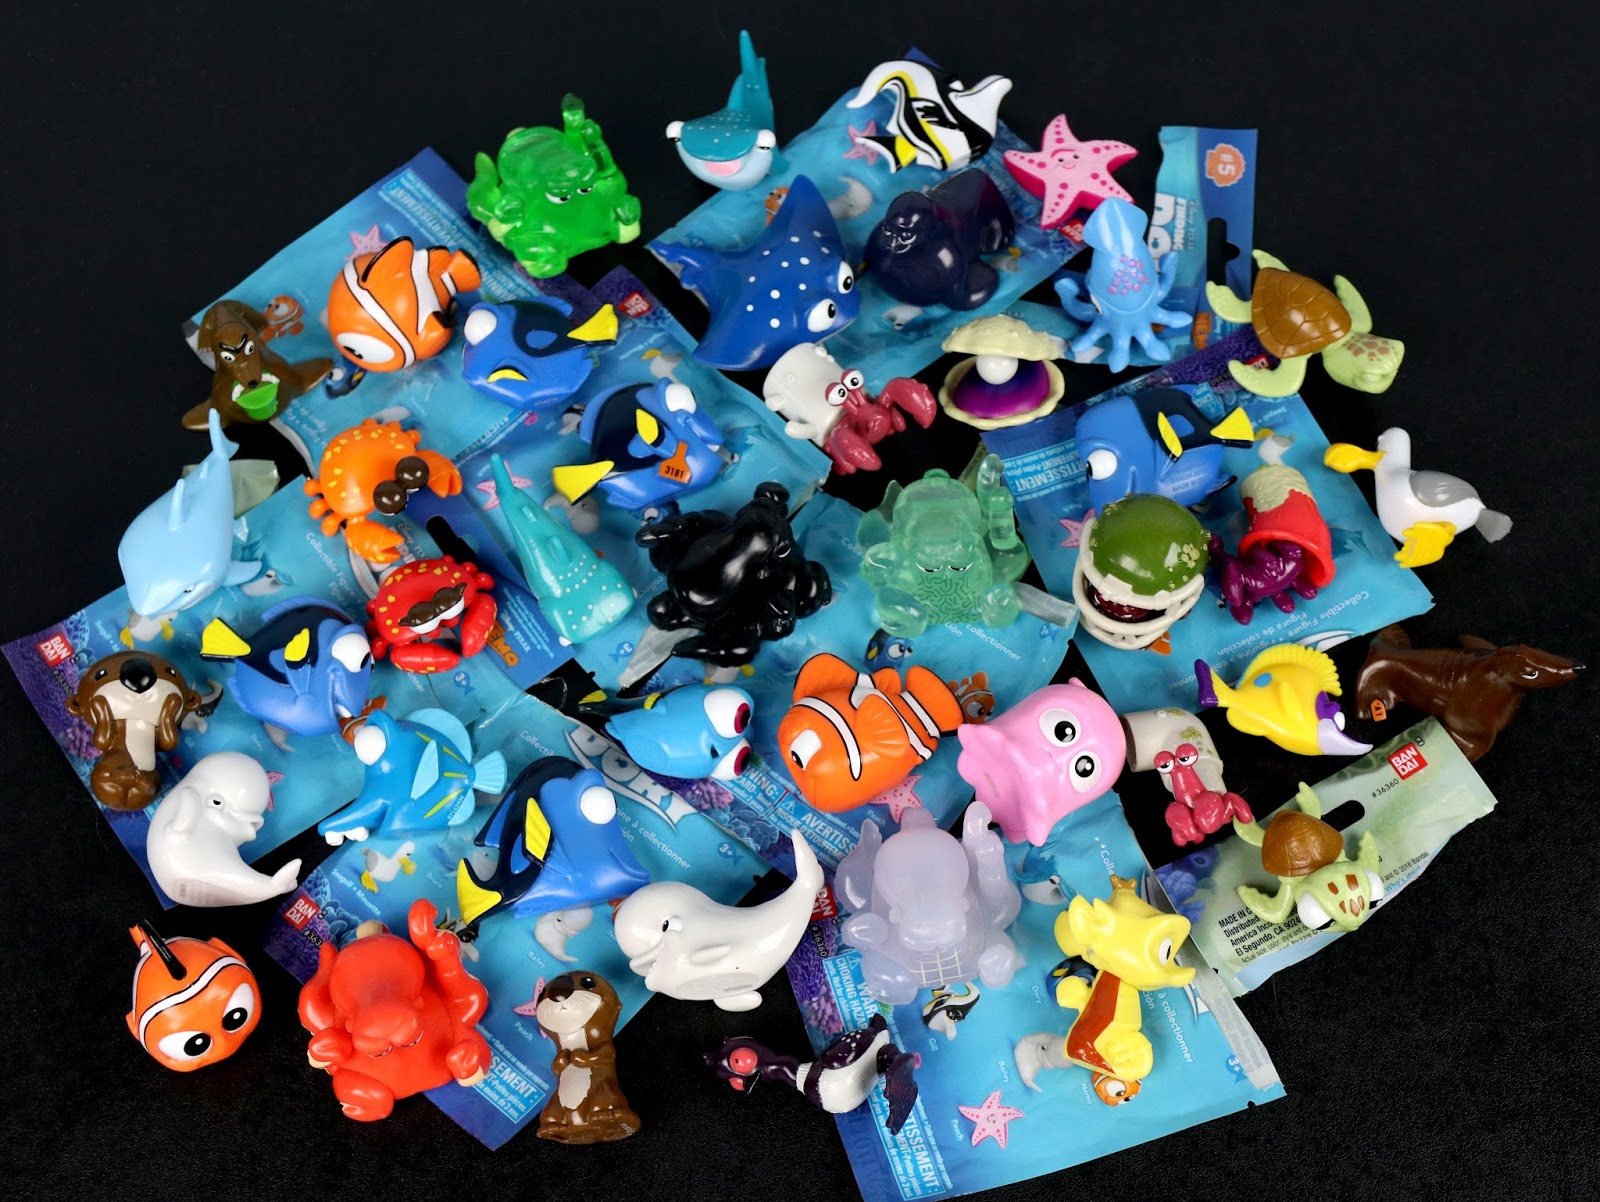 finding dory blind bag figures complete set